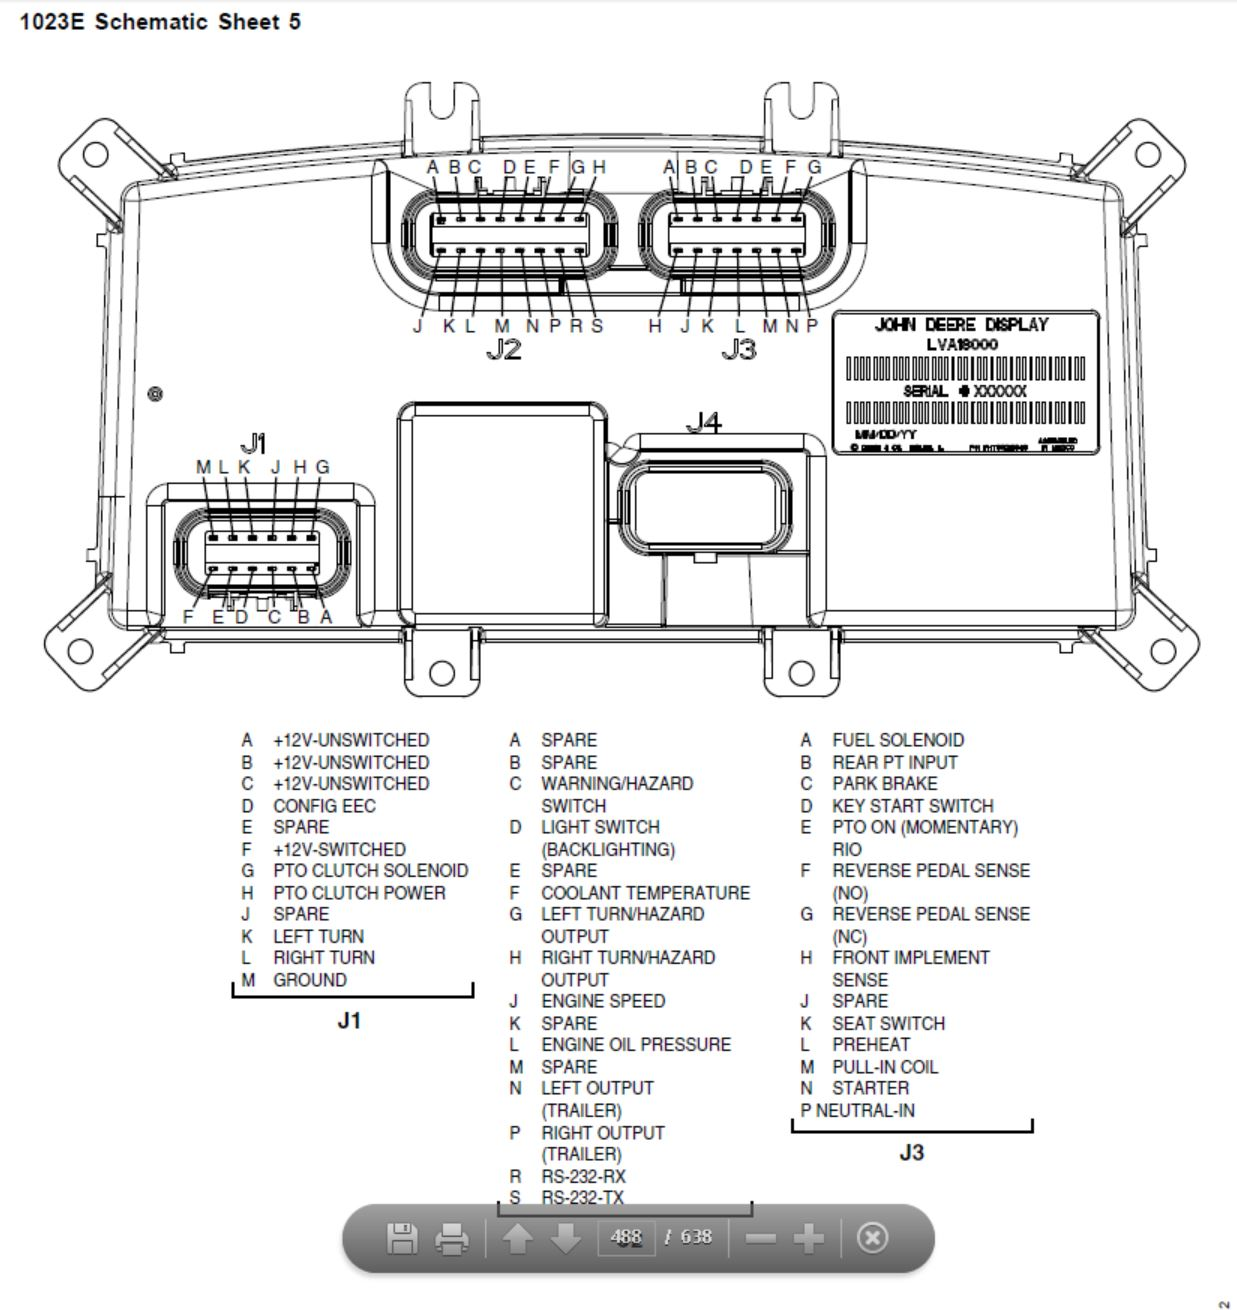 Wiring Diagram For John Deere 1023e. Wiring Diagram For